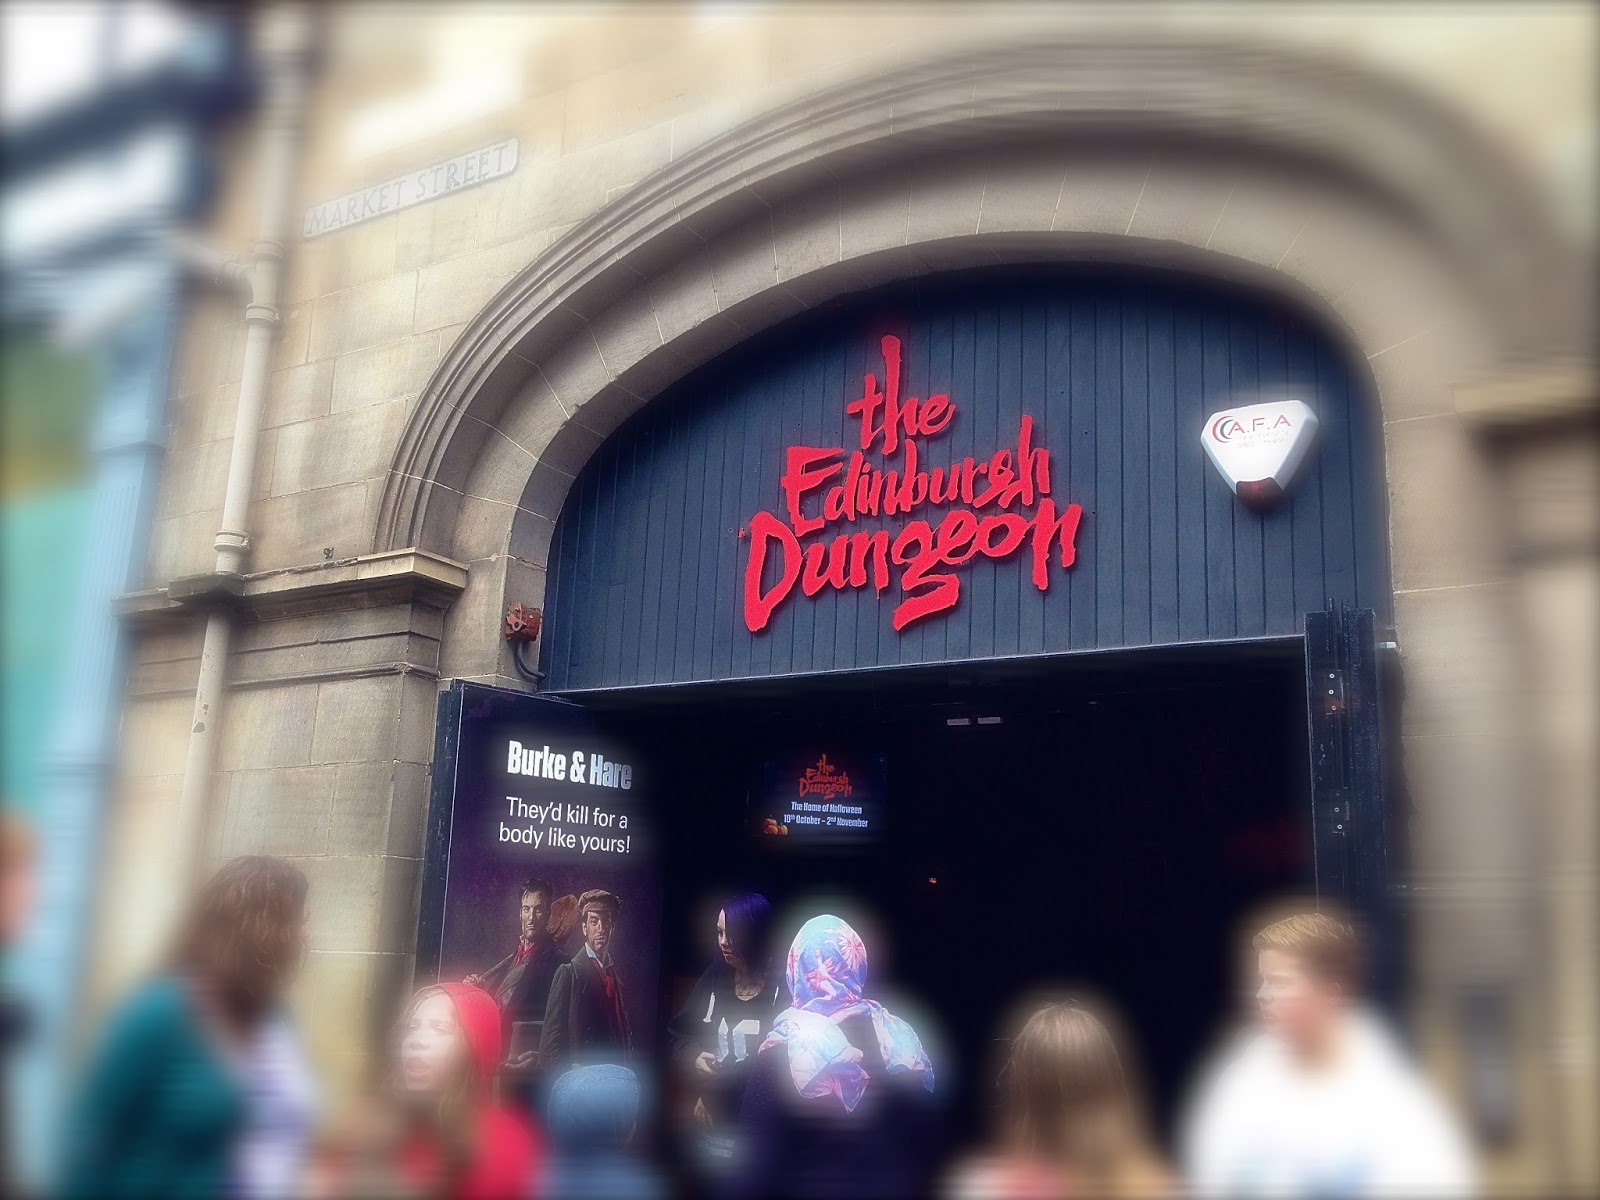 Edinburgh Dungeons entrance